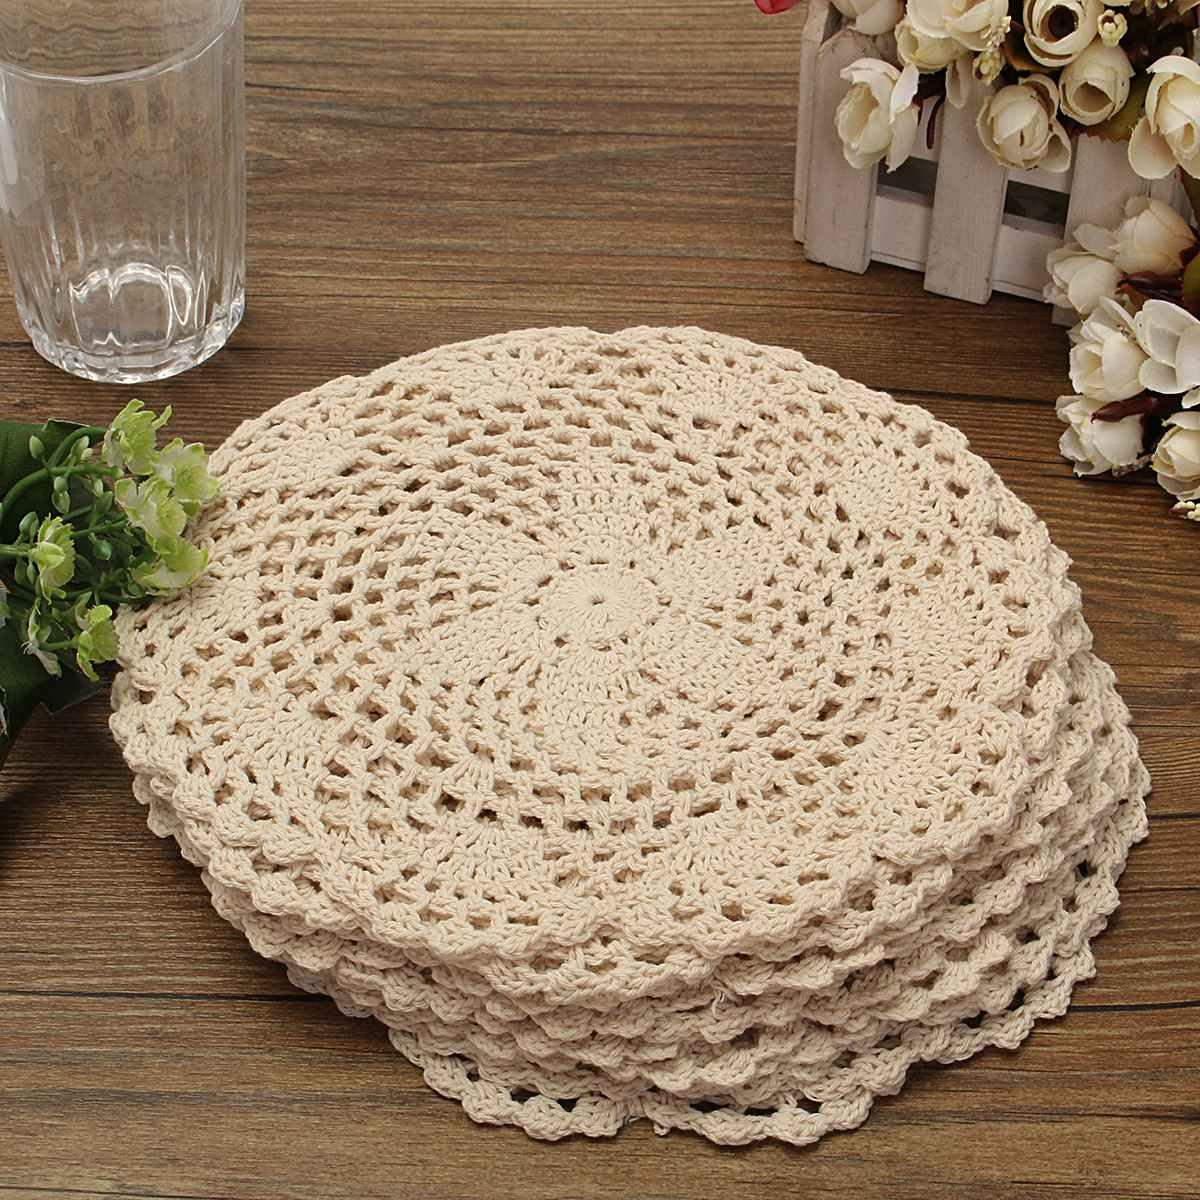 12Pcs Vintage Cotton Mat Round Hand Crocheted Lace Doilies Flower Coasters Lot Household Table Decorative Crafts Accessories